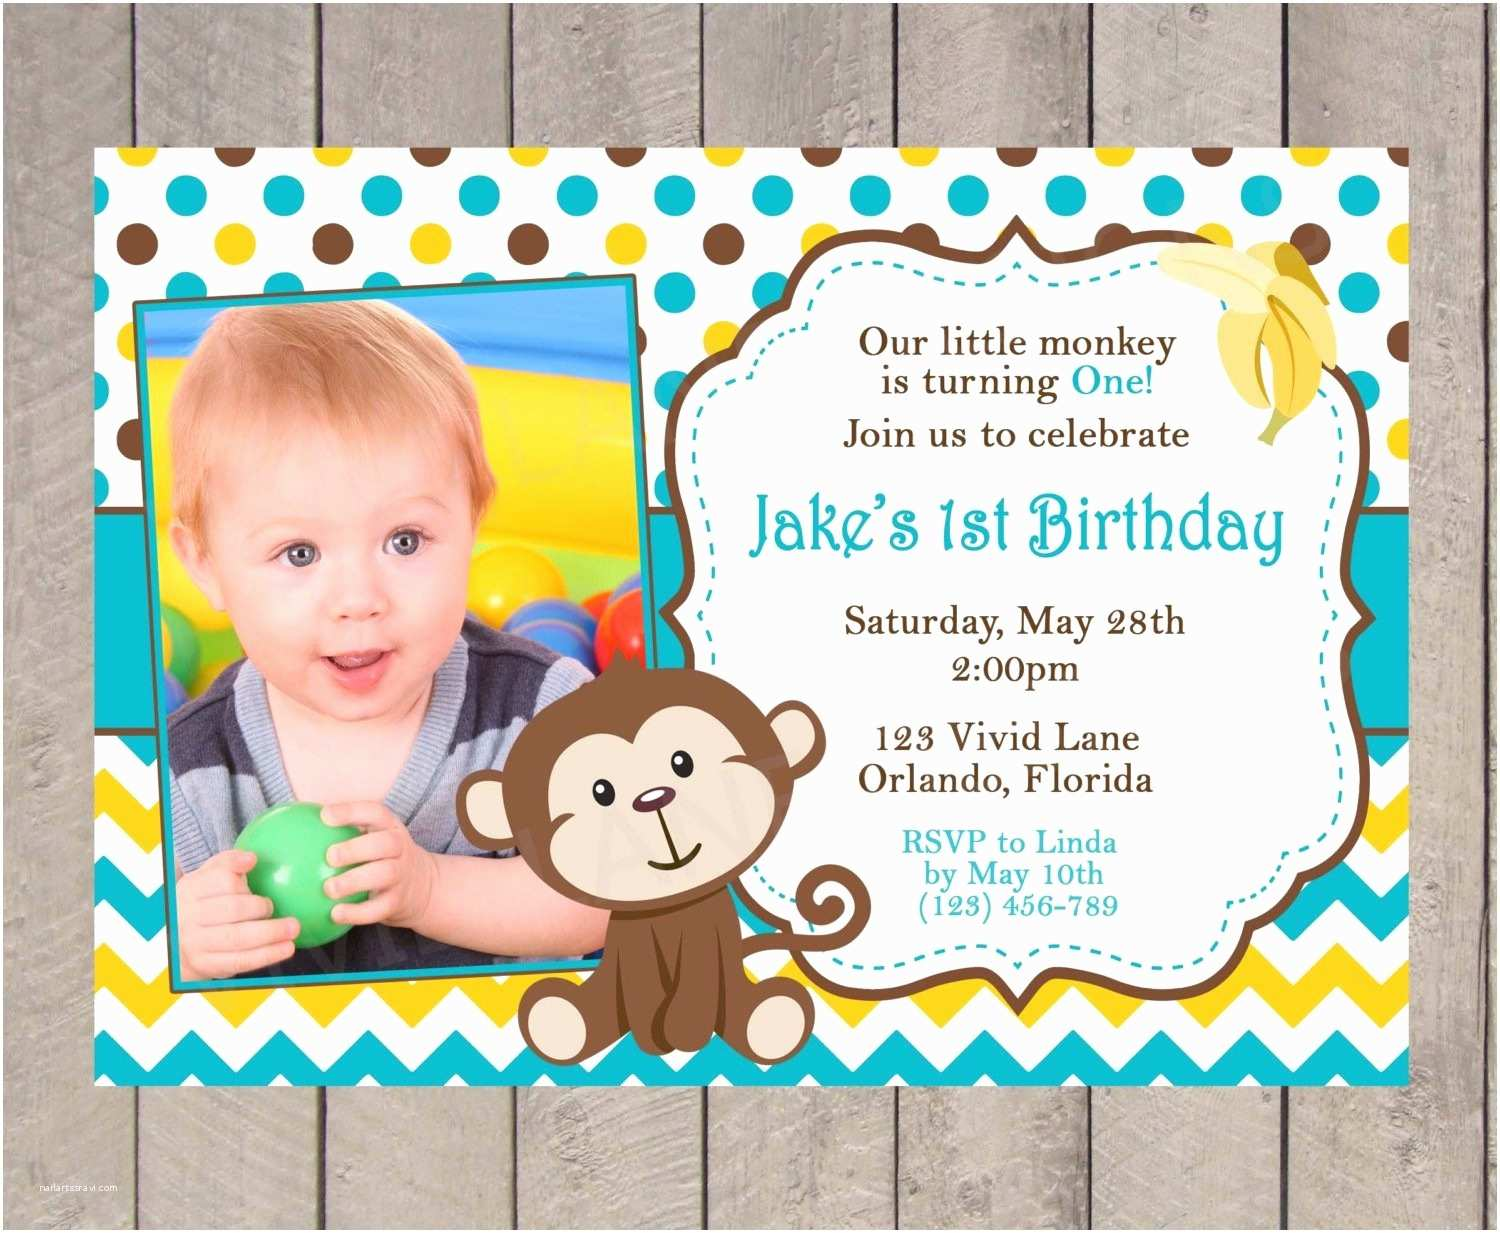 Boy Birthday Invitations 2nd Birthday Invitation Cards Templates for Boys